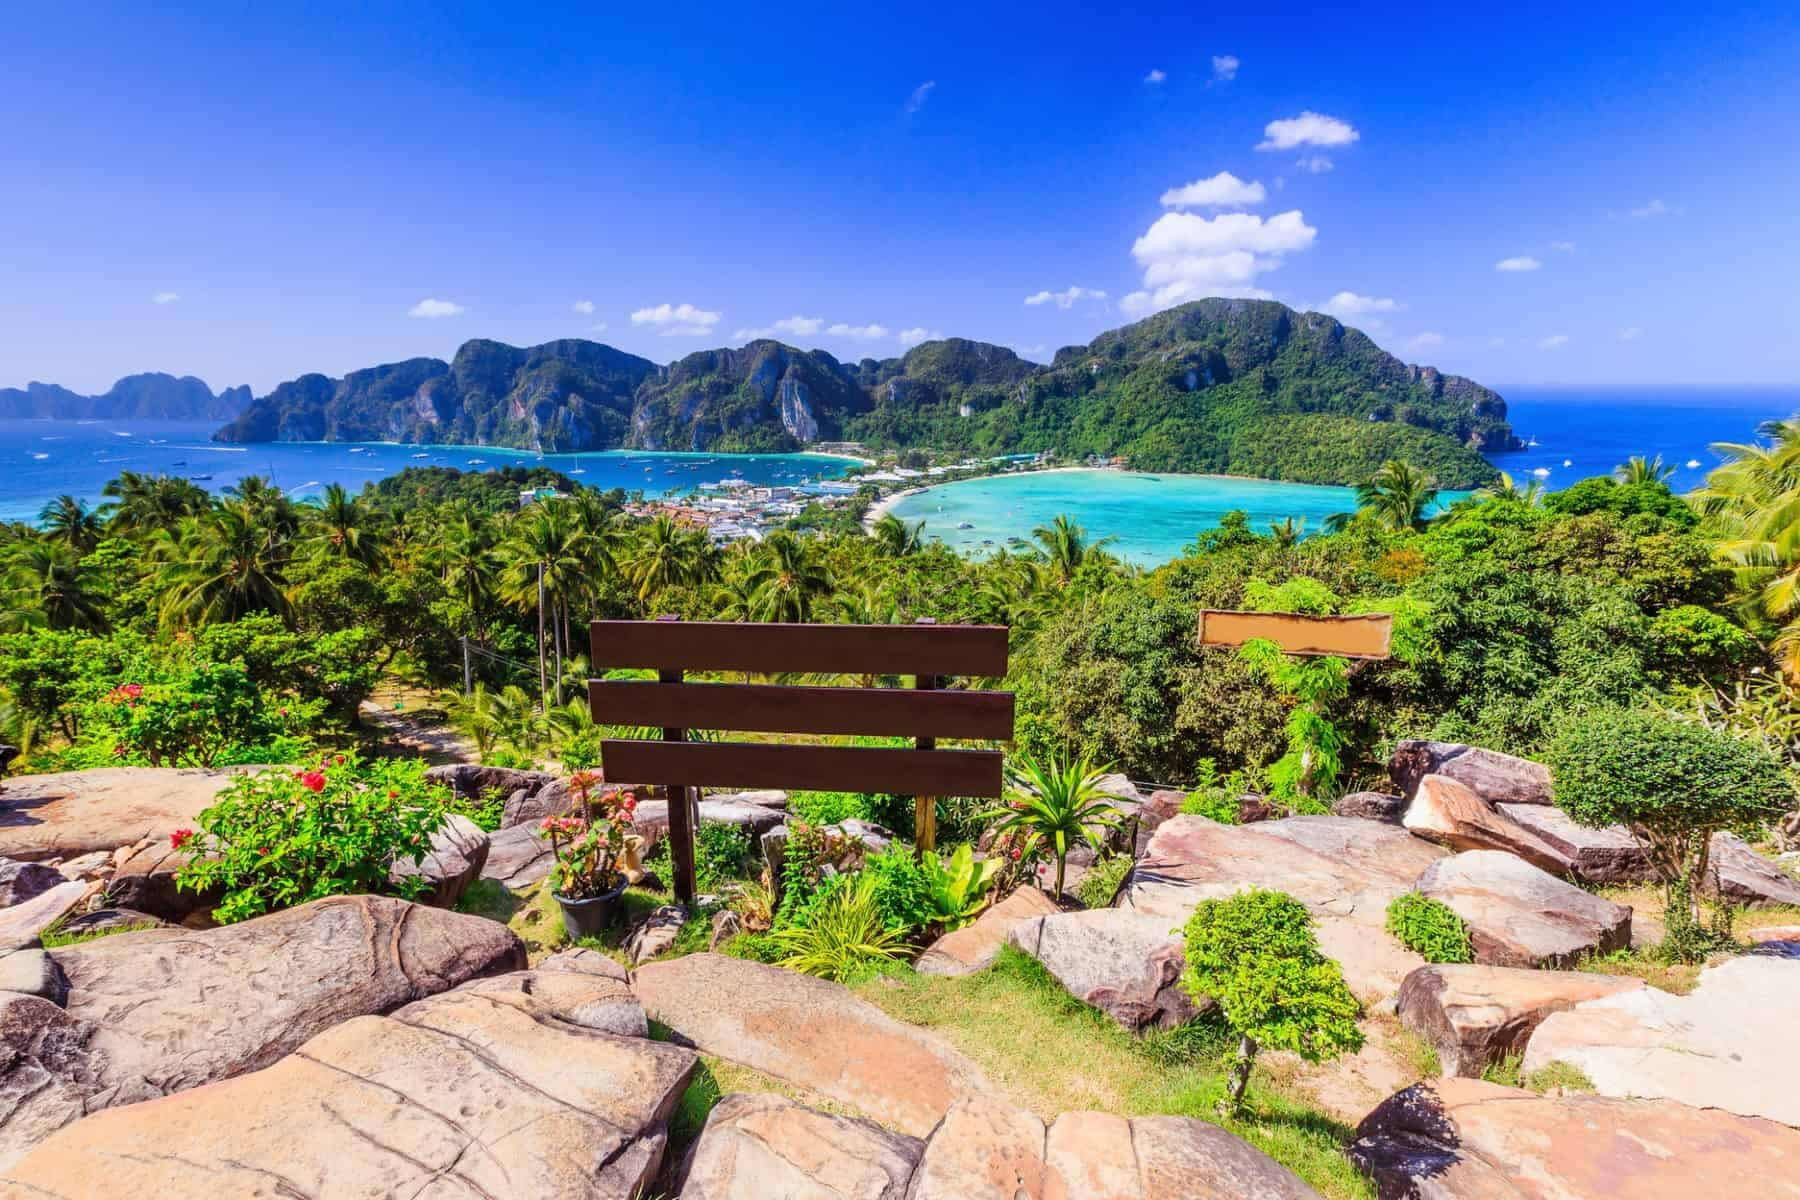 Krabi, Thailand. Phi Phi Don, panormic view of the islands.